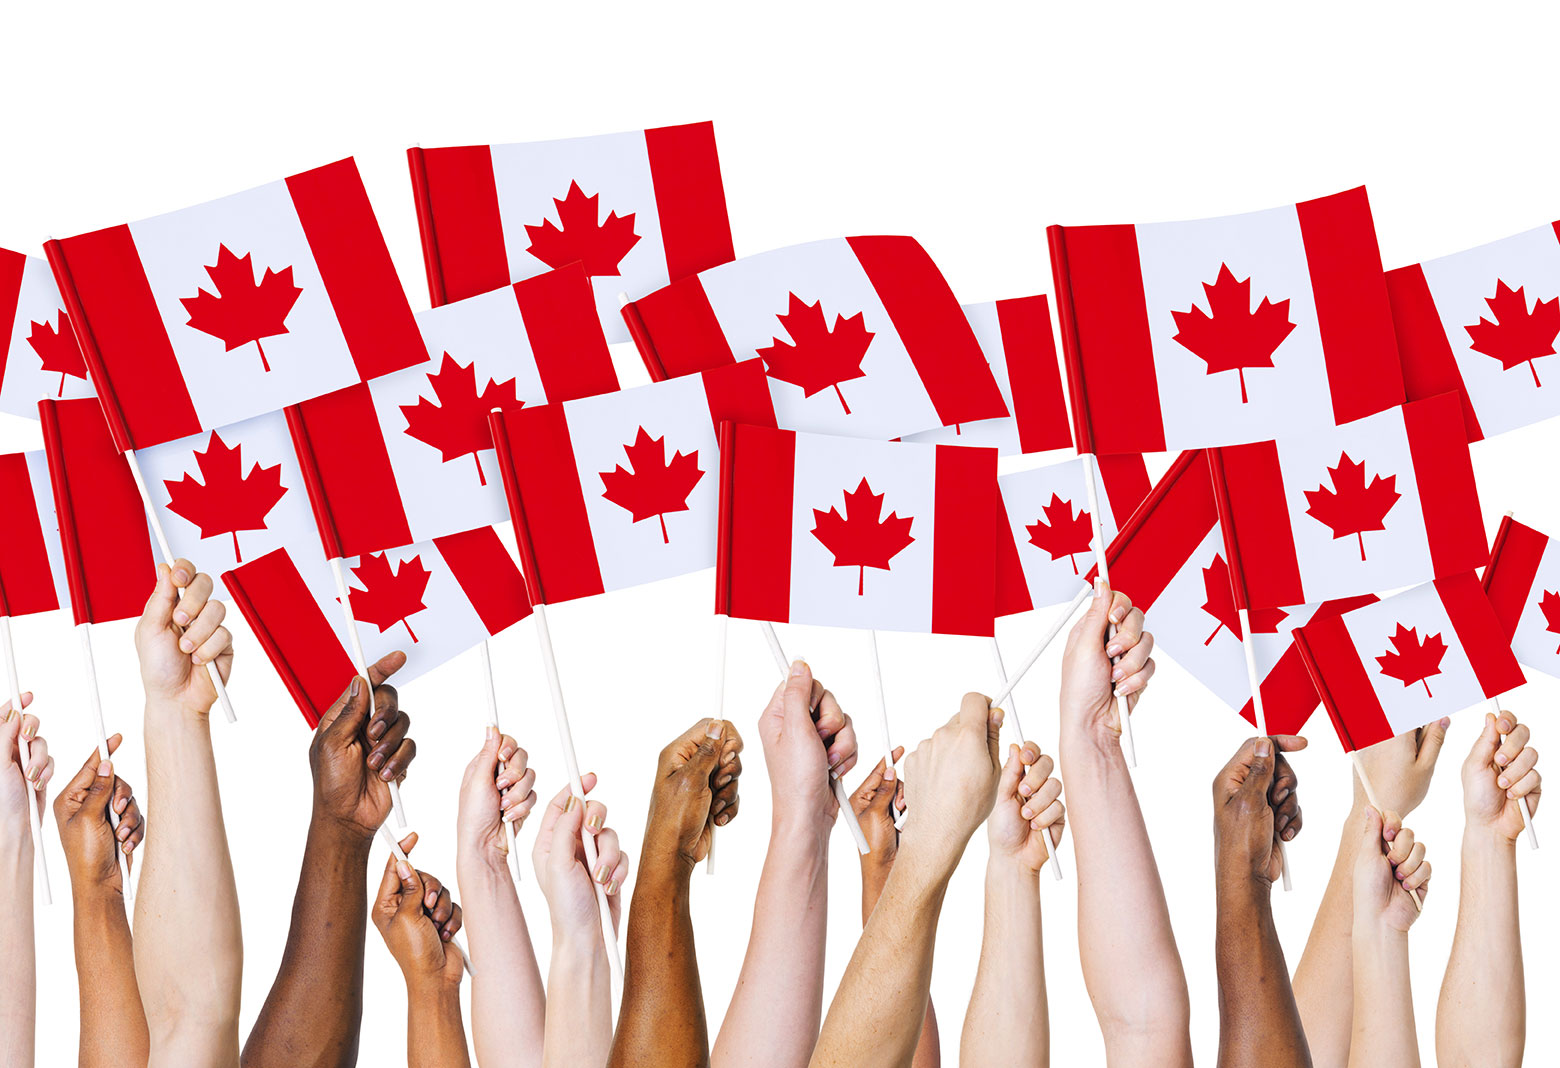 multiculturalism in canada History, politics, arts, science & more: the canadian encyclopedia is your reference on canada articles, timelines & resources for teachers, students & public.